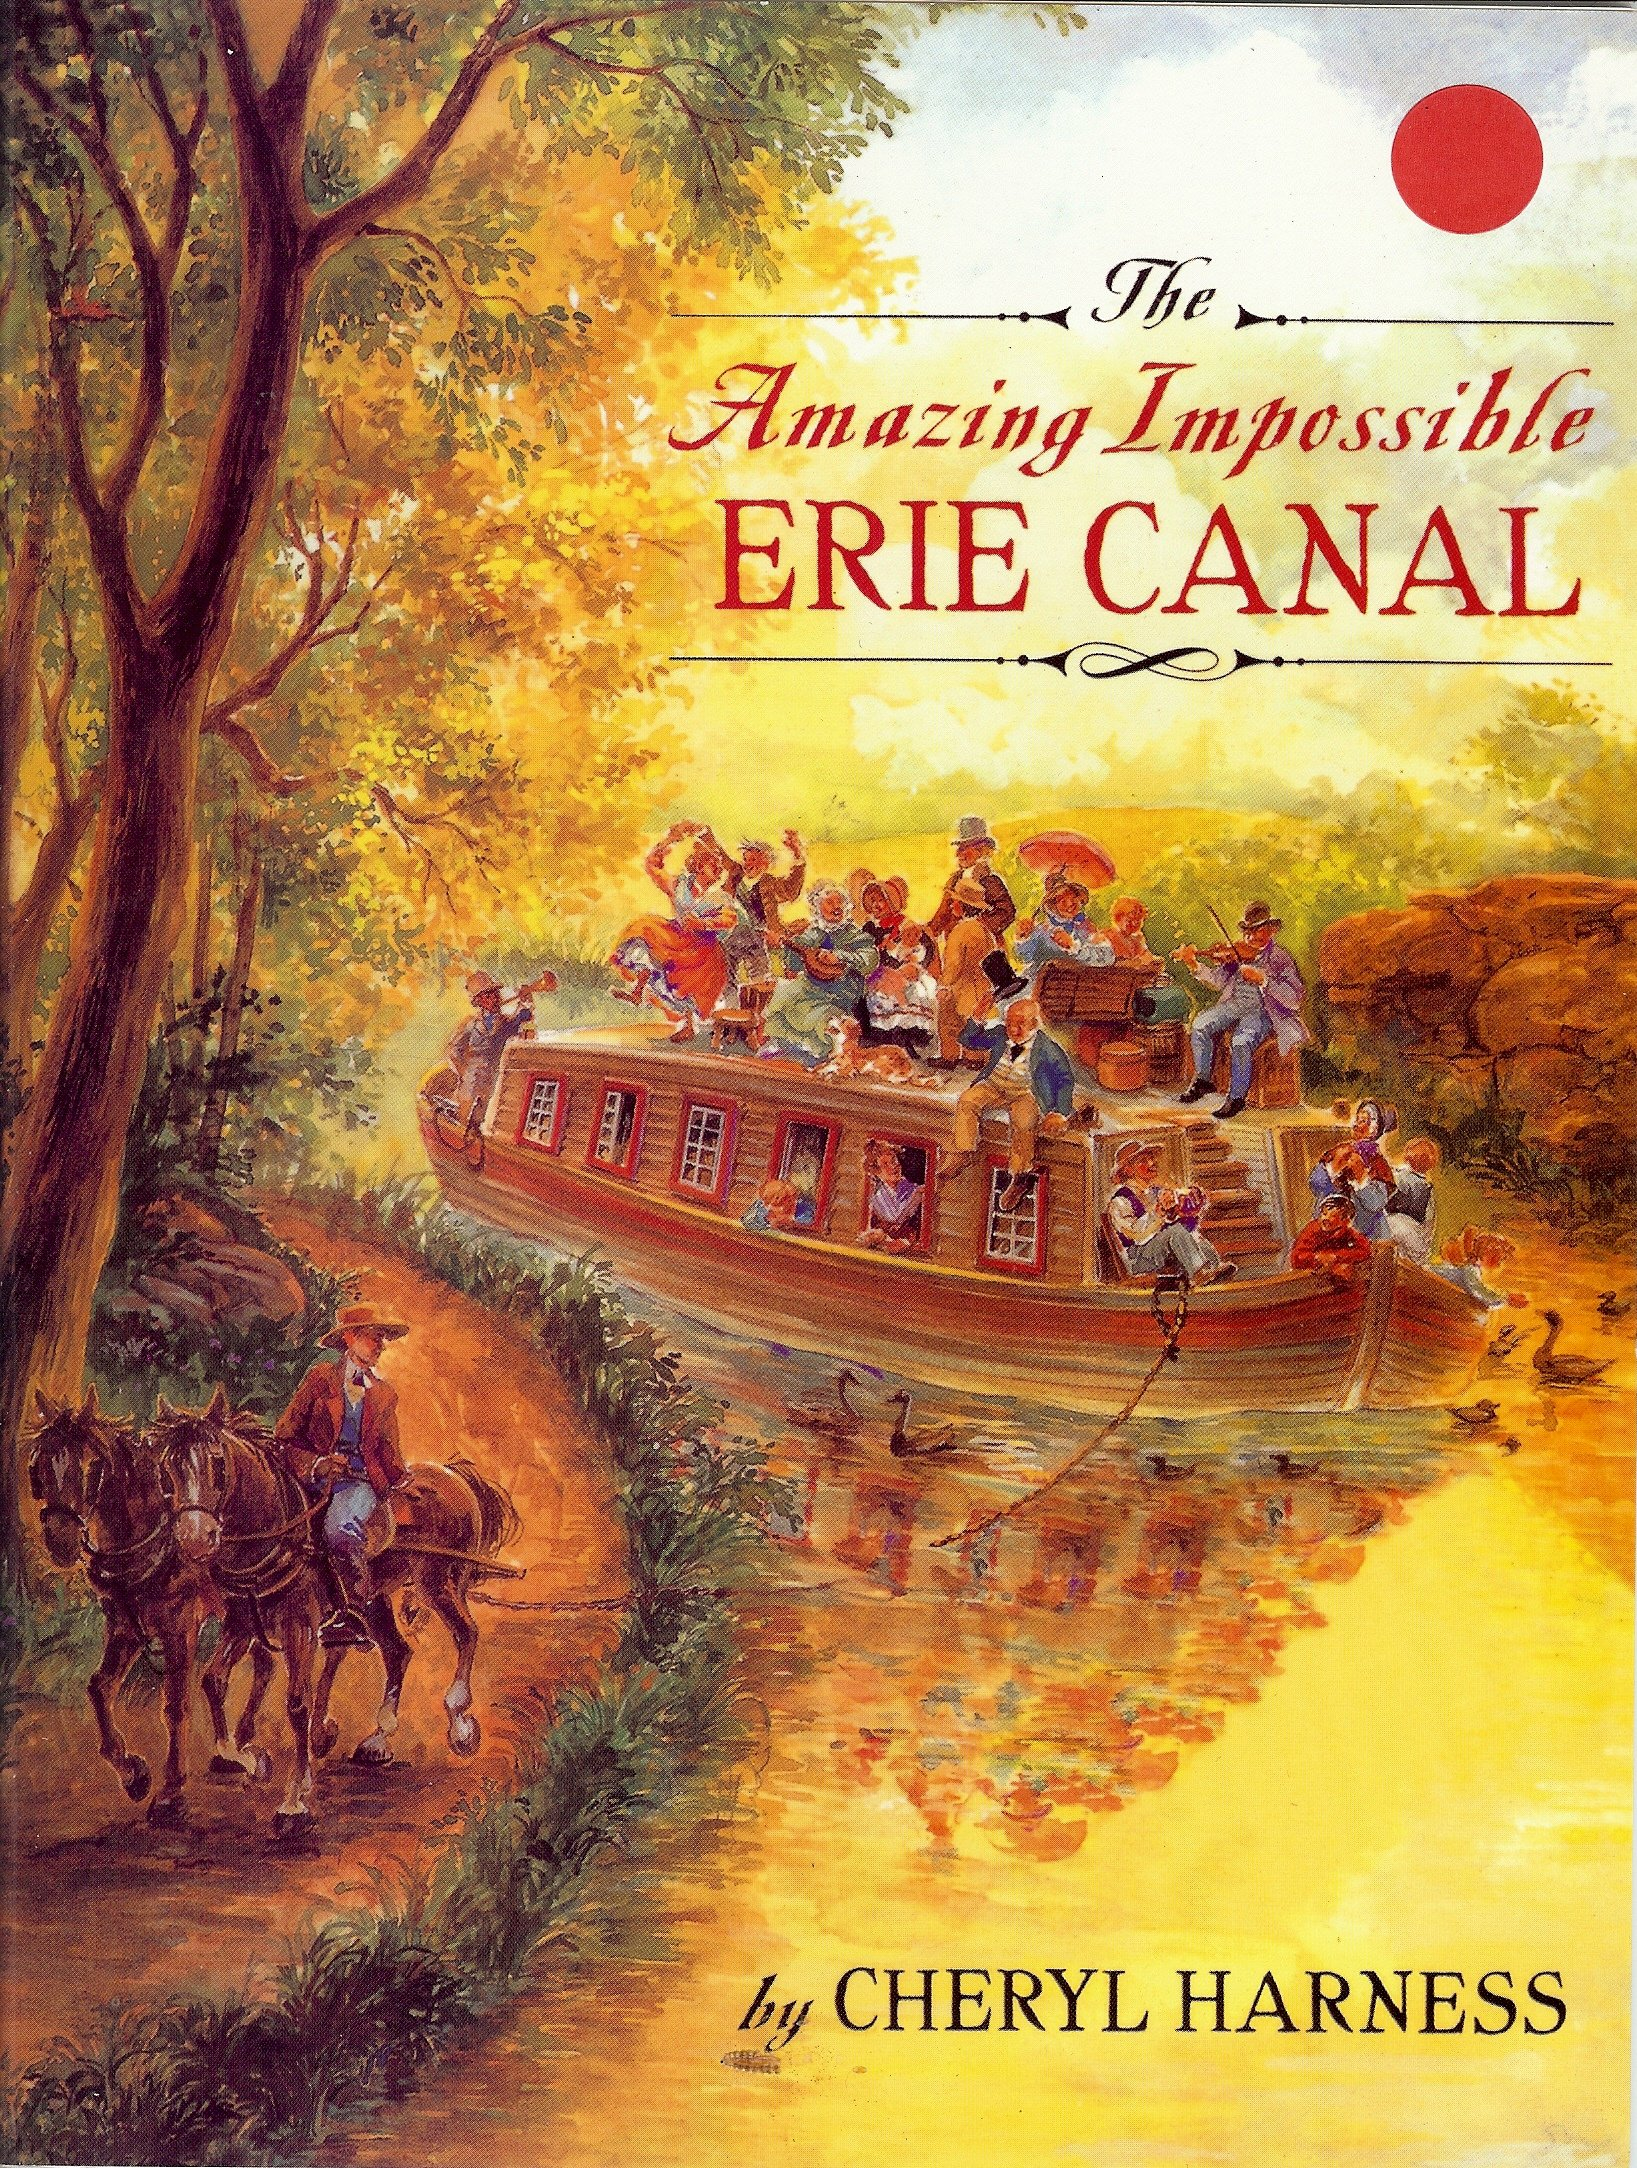 Download Houghton Mifflin Mathmatics: Literature Library Reader The Amazing Impossible Erie Canal (Hm Math 2005) pdf epub